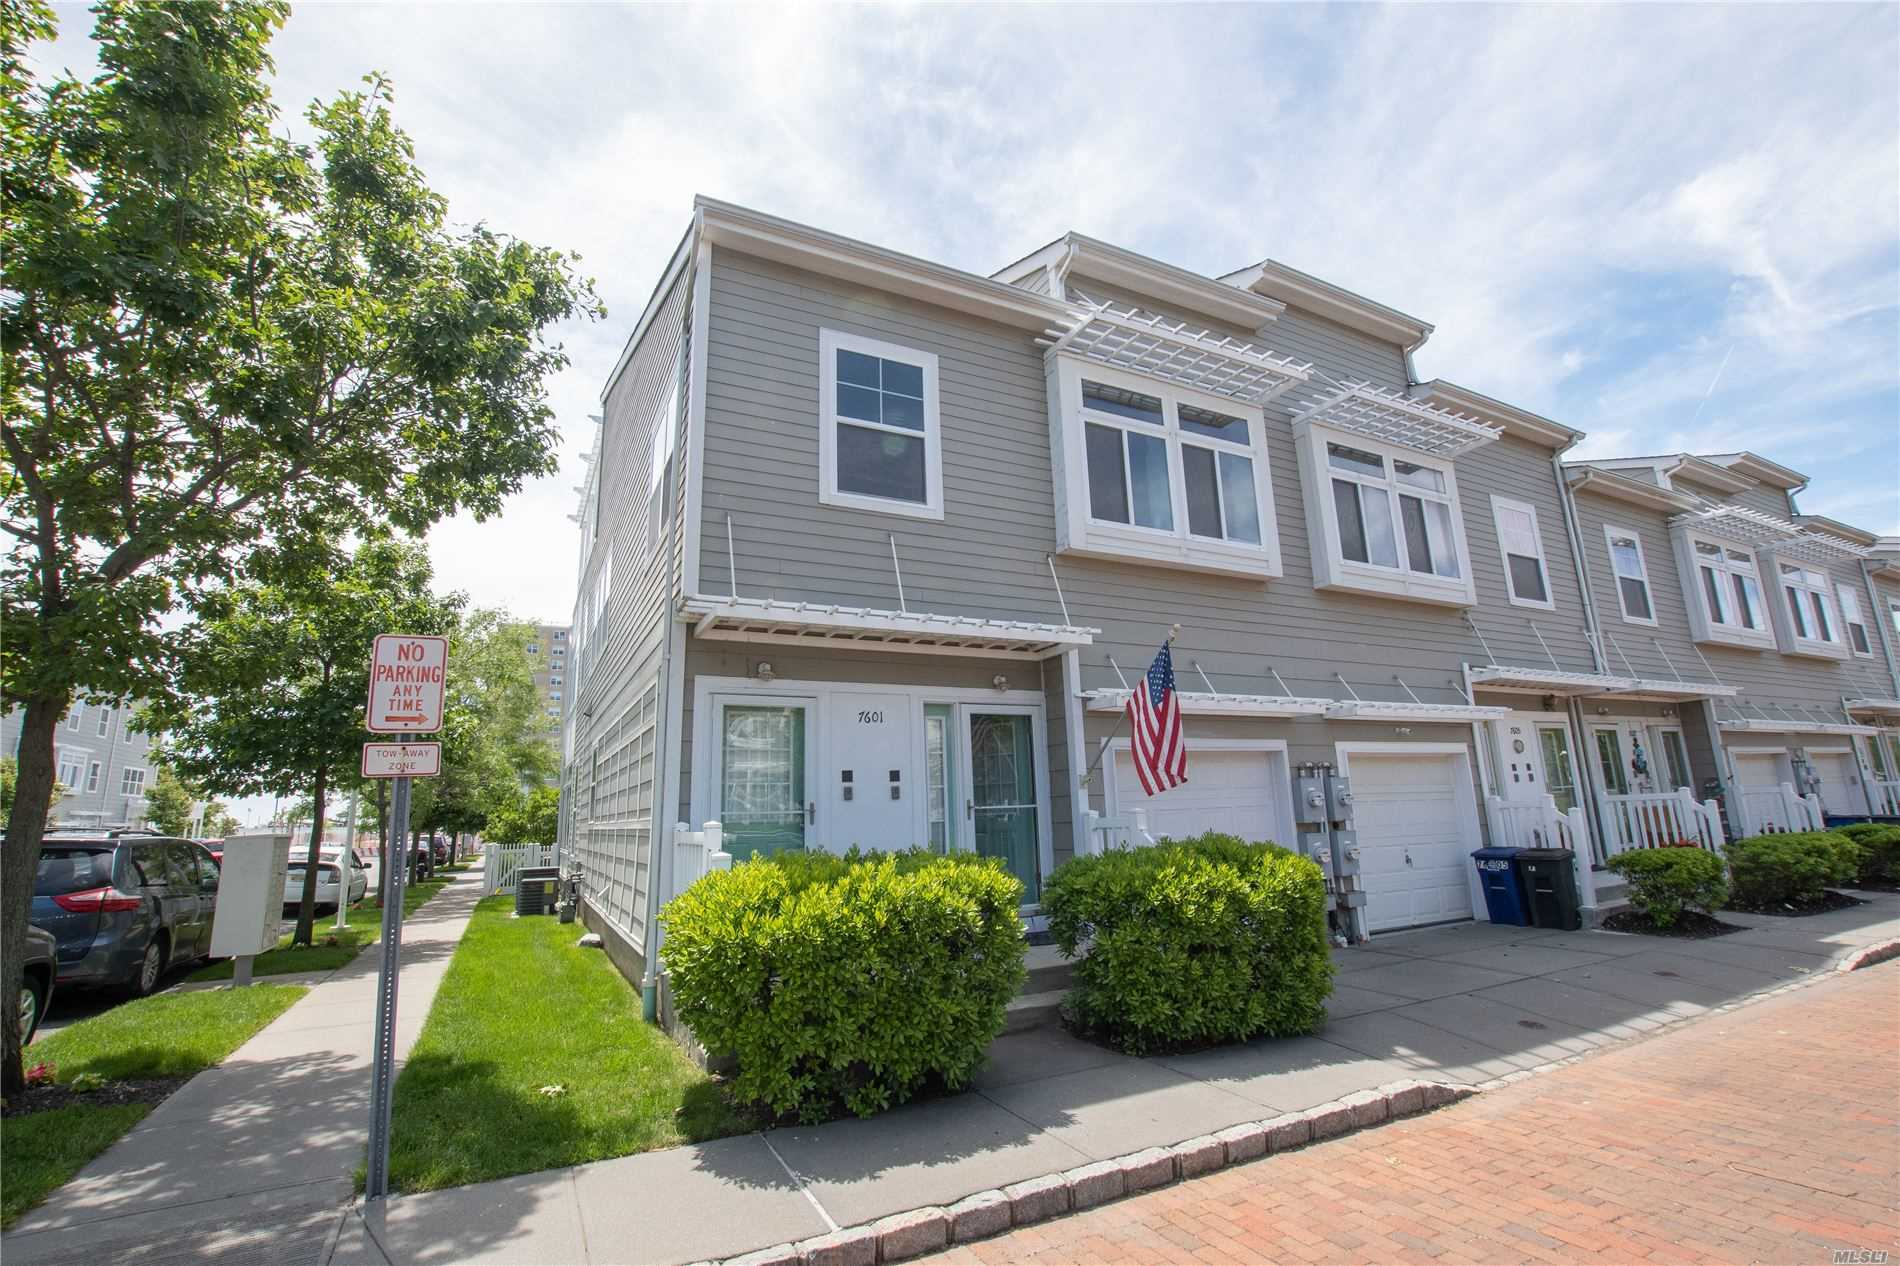 Property for sale at 76-01 Aquatic Drive, Arverne NY 11692, Arverne,  New York 11692